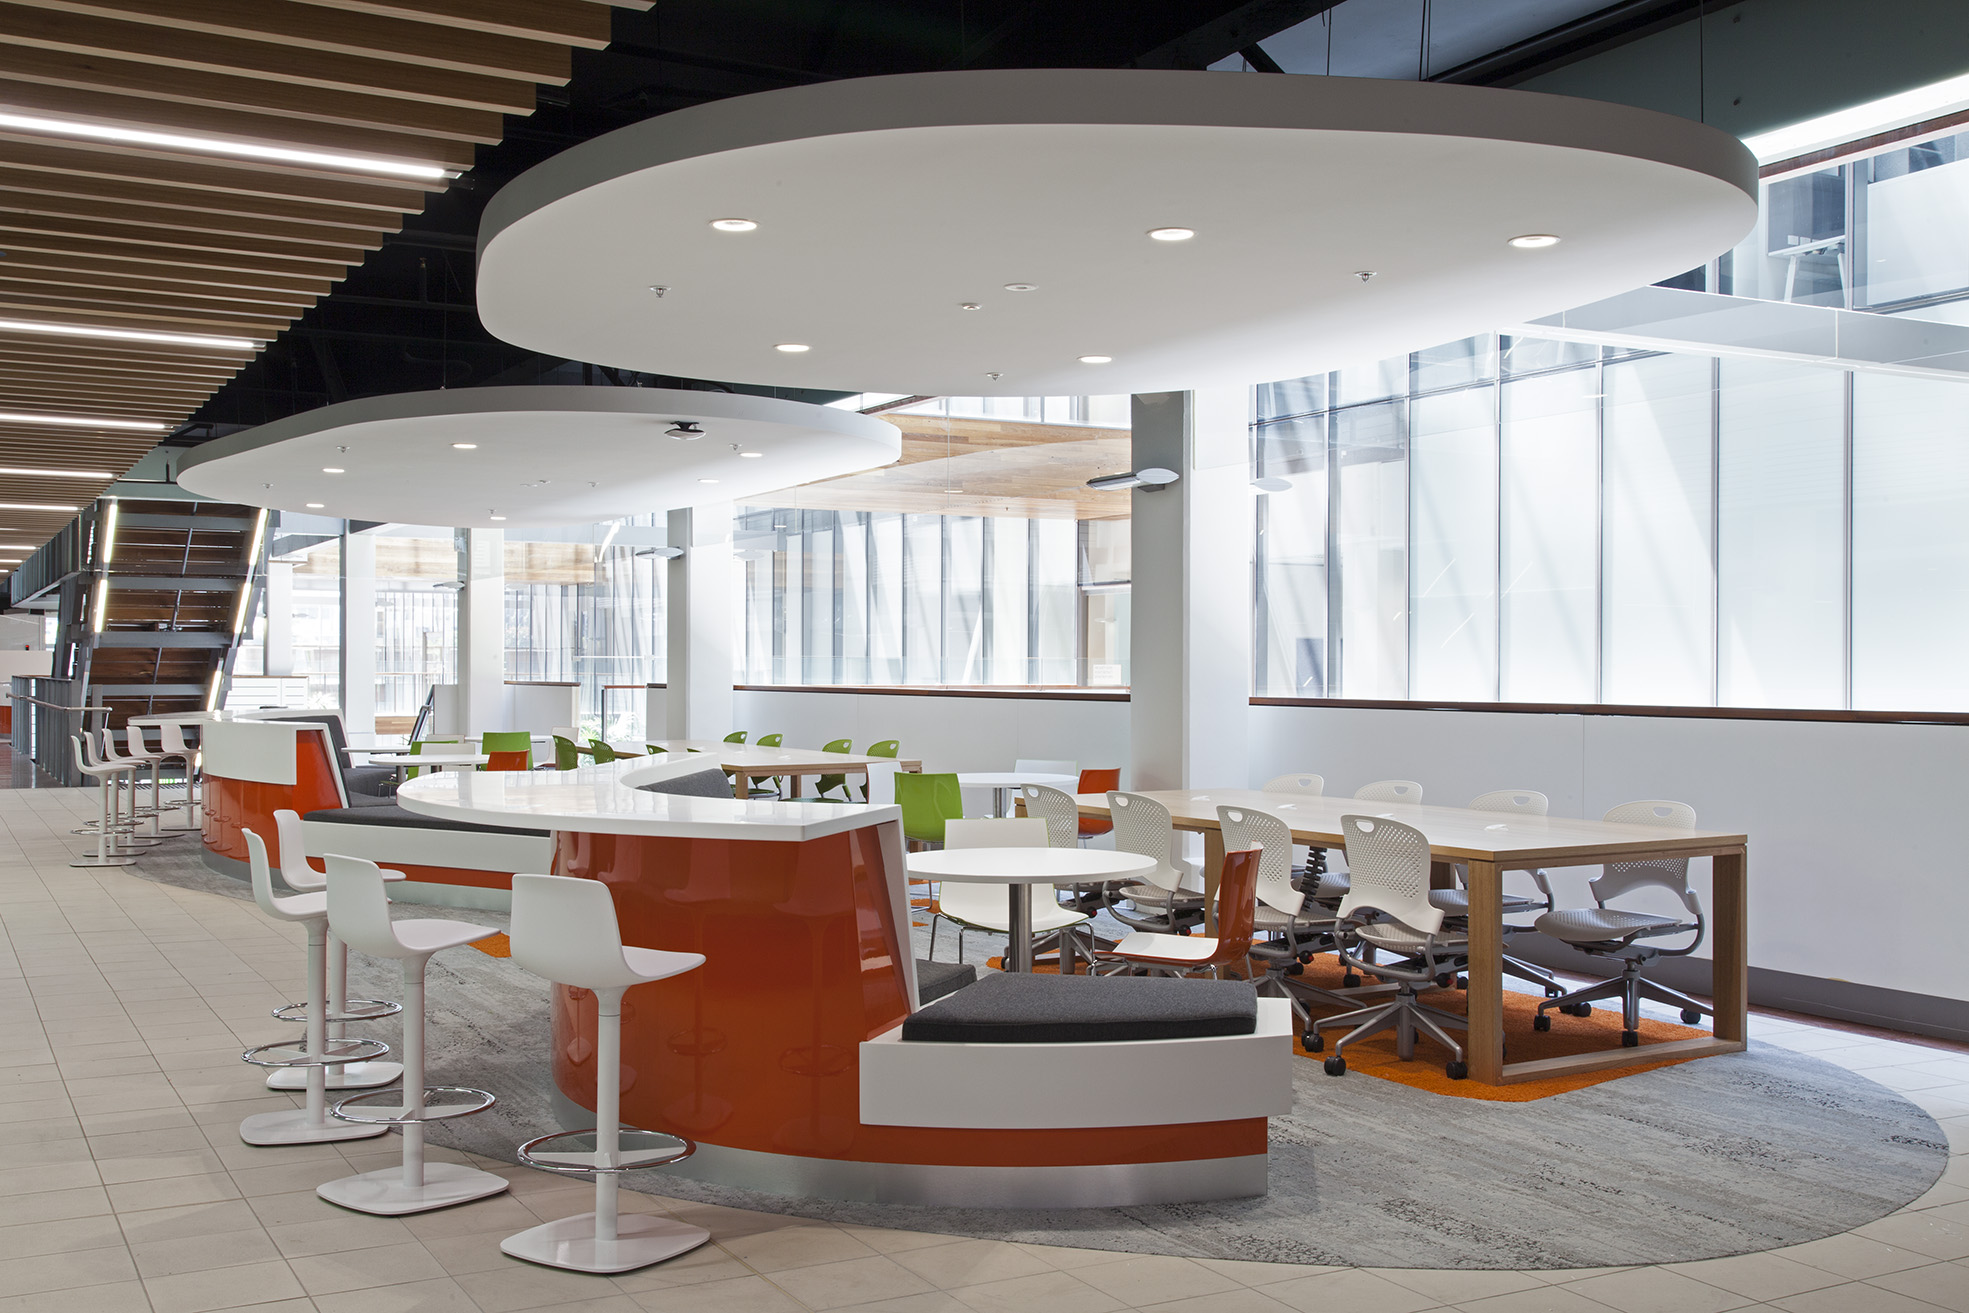 UTS Building 10 FASS & FoH Student Study Area and Meeting Space Interior Design – Gardner Wetherill GW 3